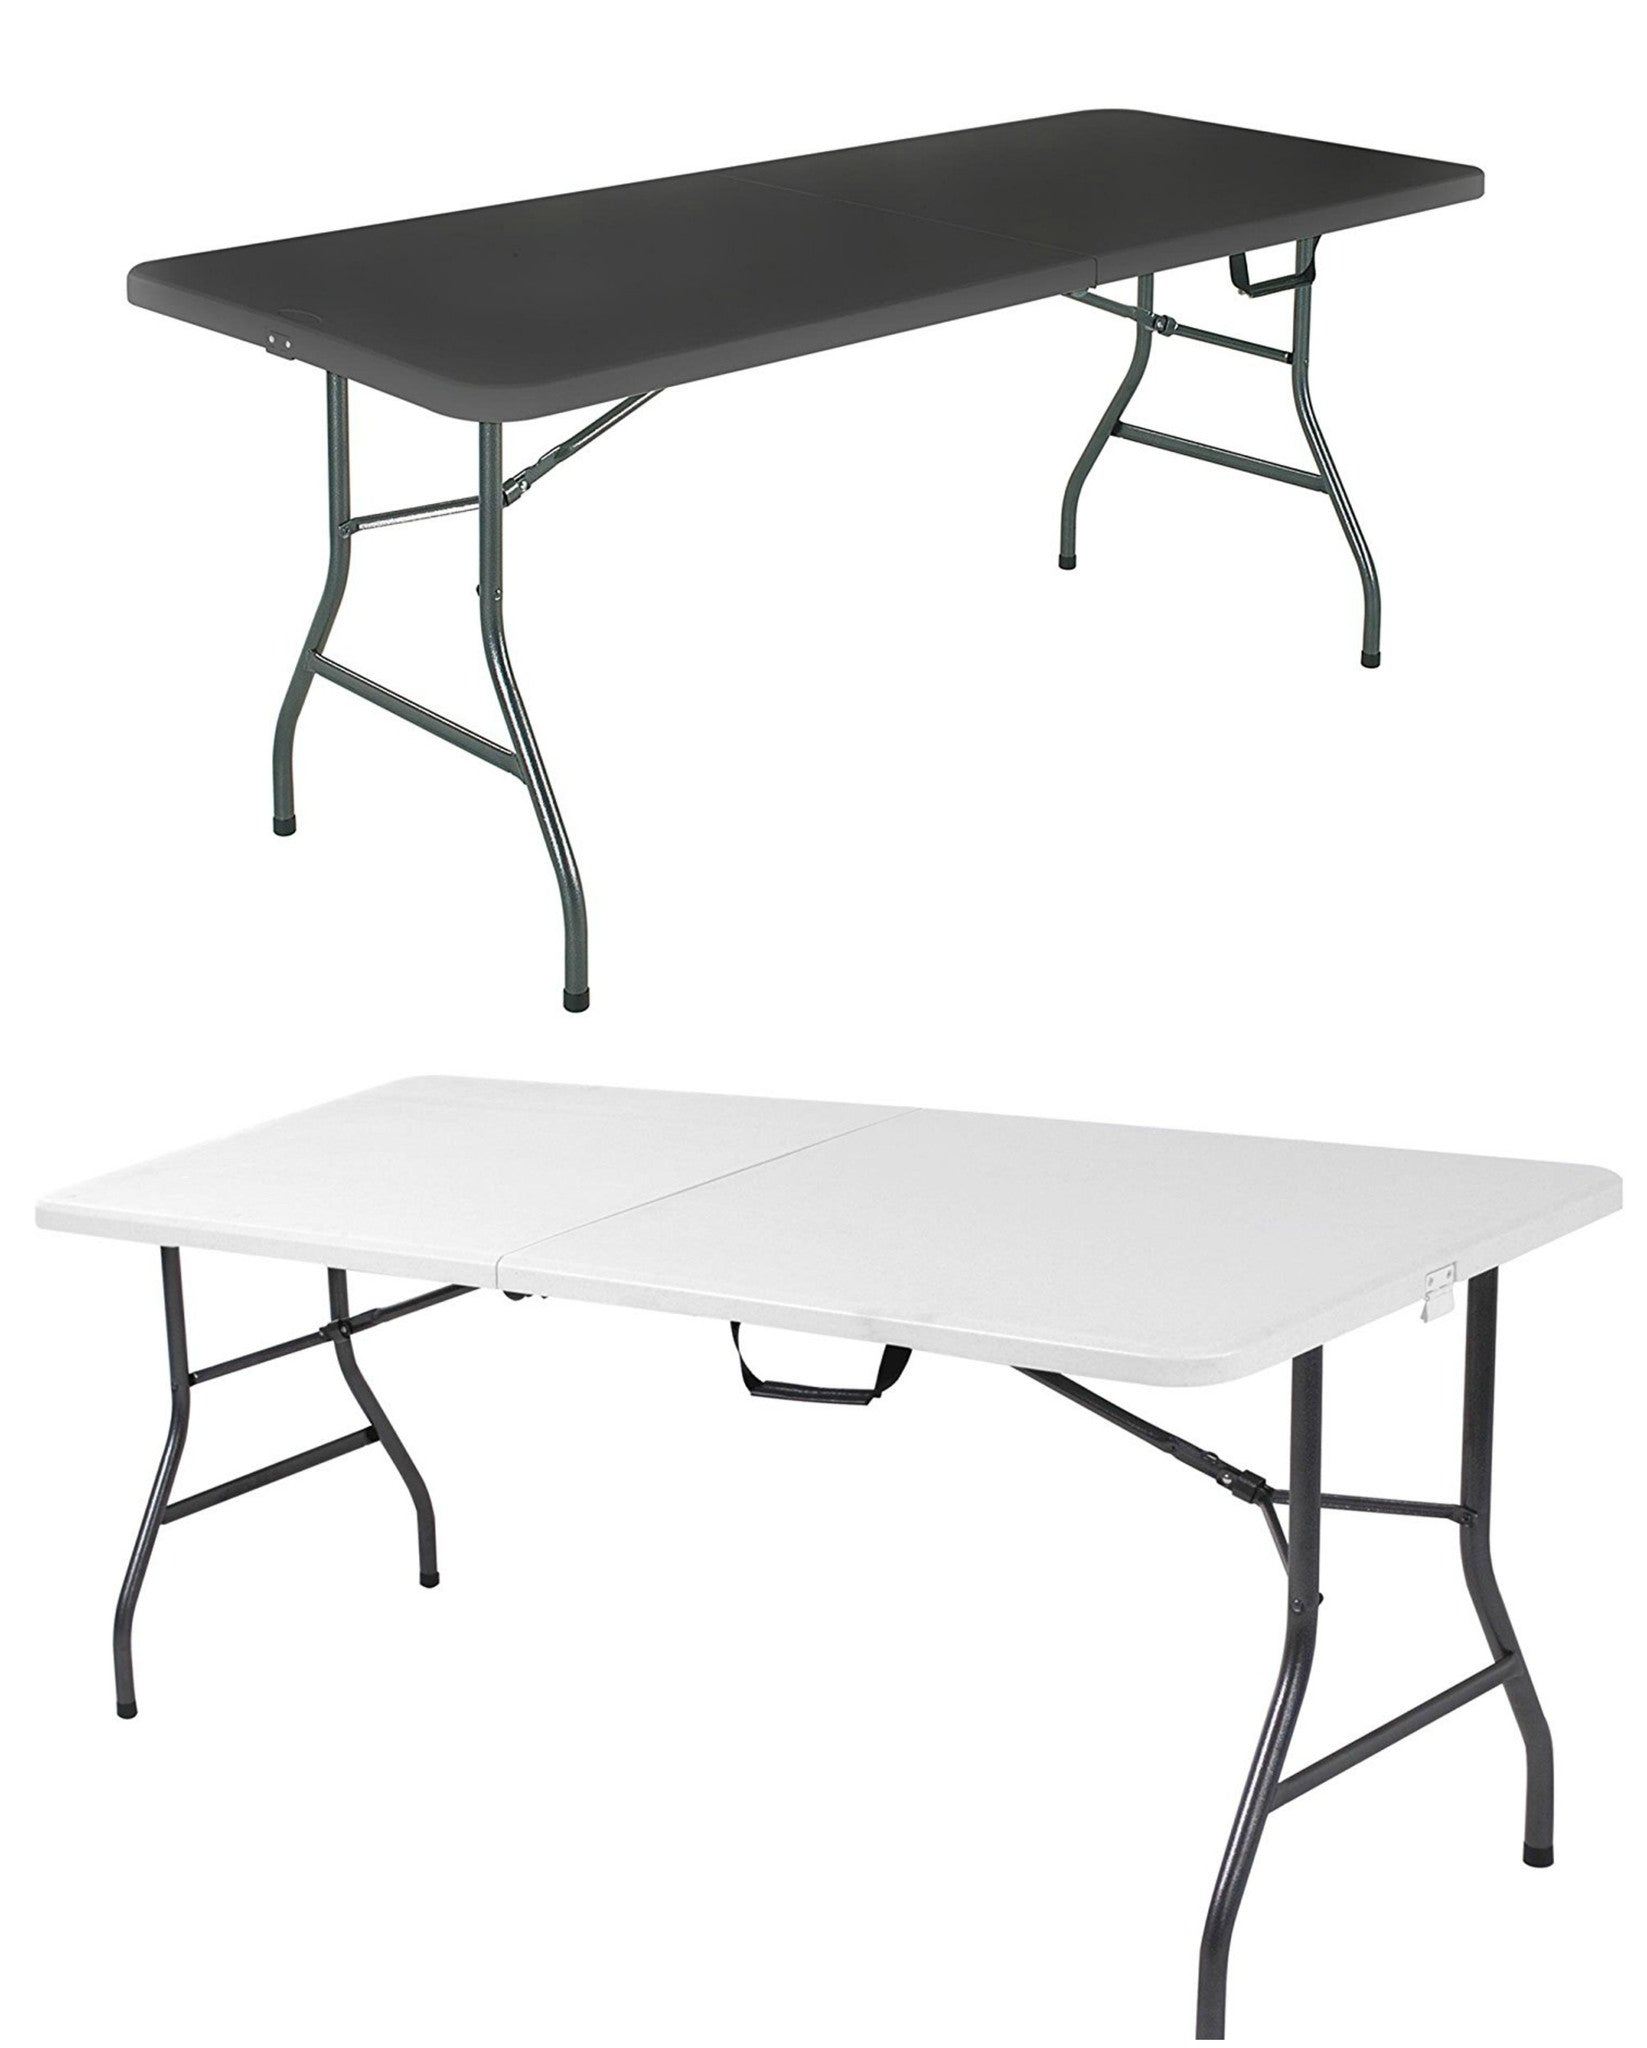 Superieur Cosco 6 Foot X 30 Inch Folding Table